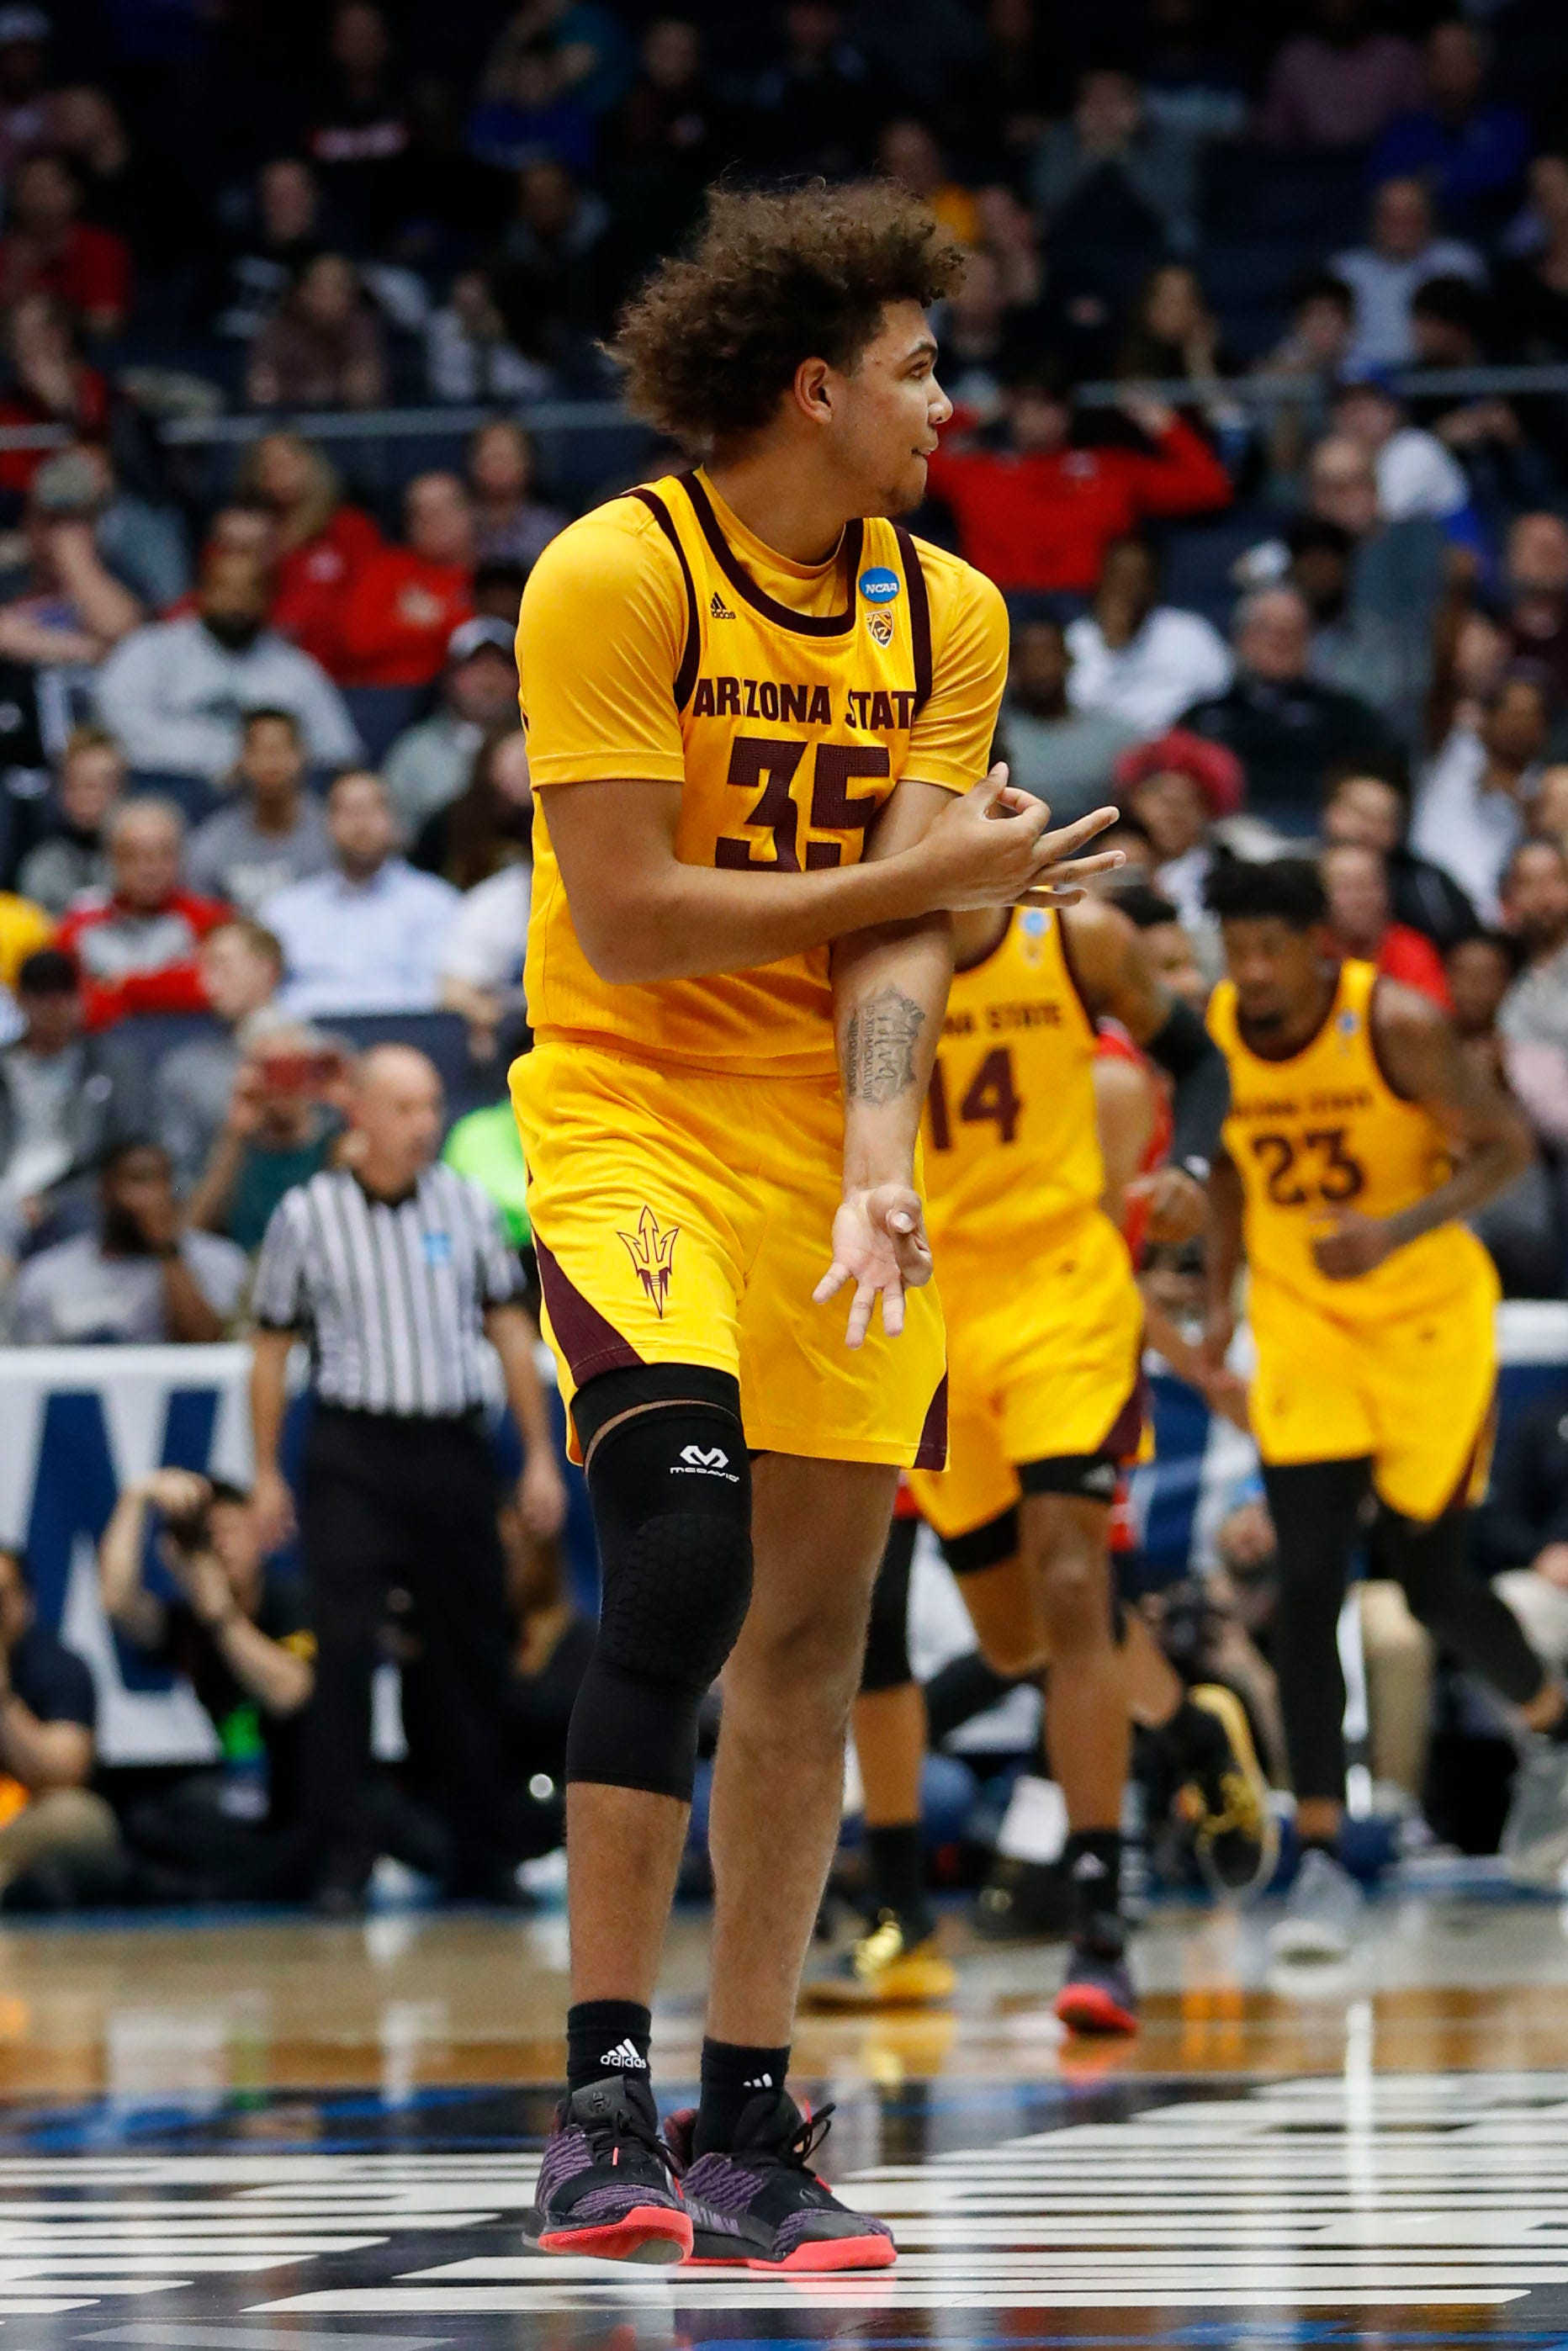 Arizona State gets first NCAA tournament win since 2009 by beating St. John's in First Four